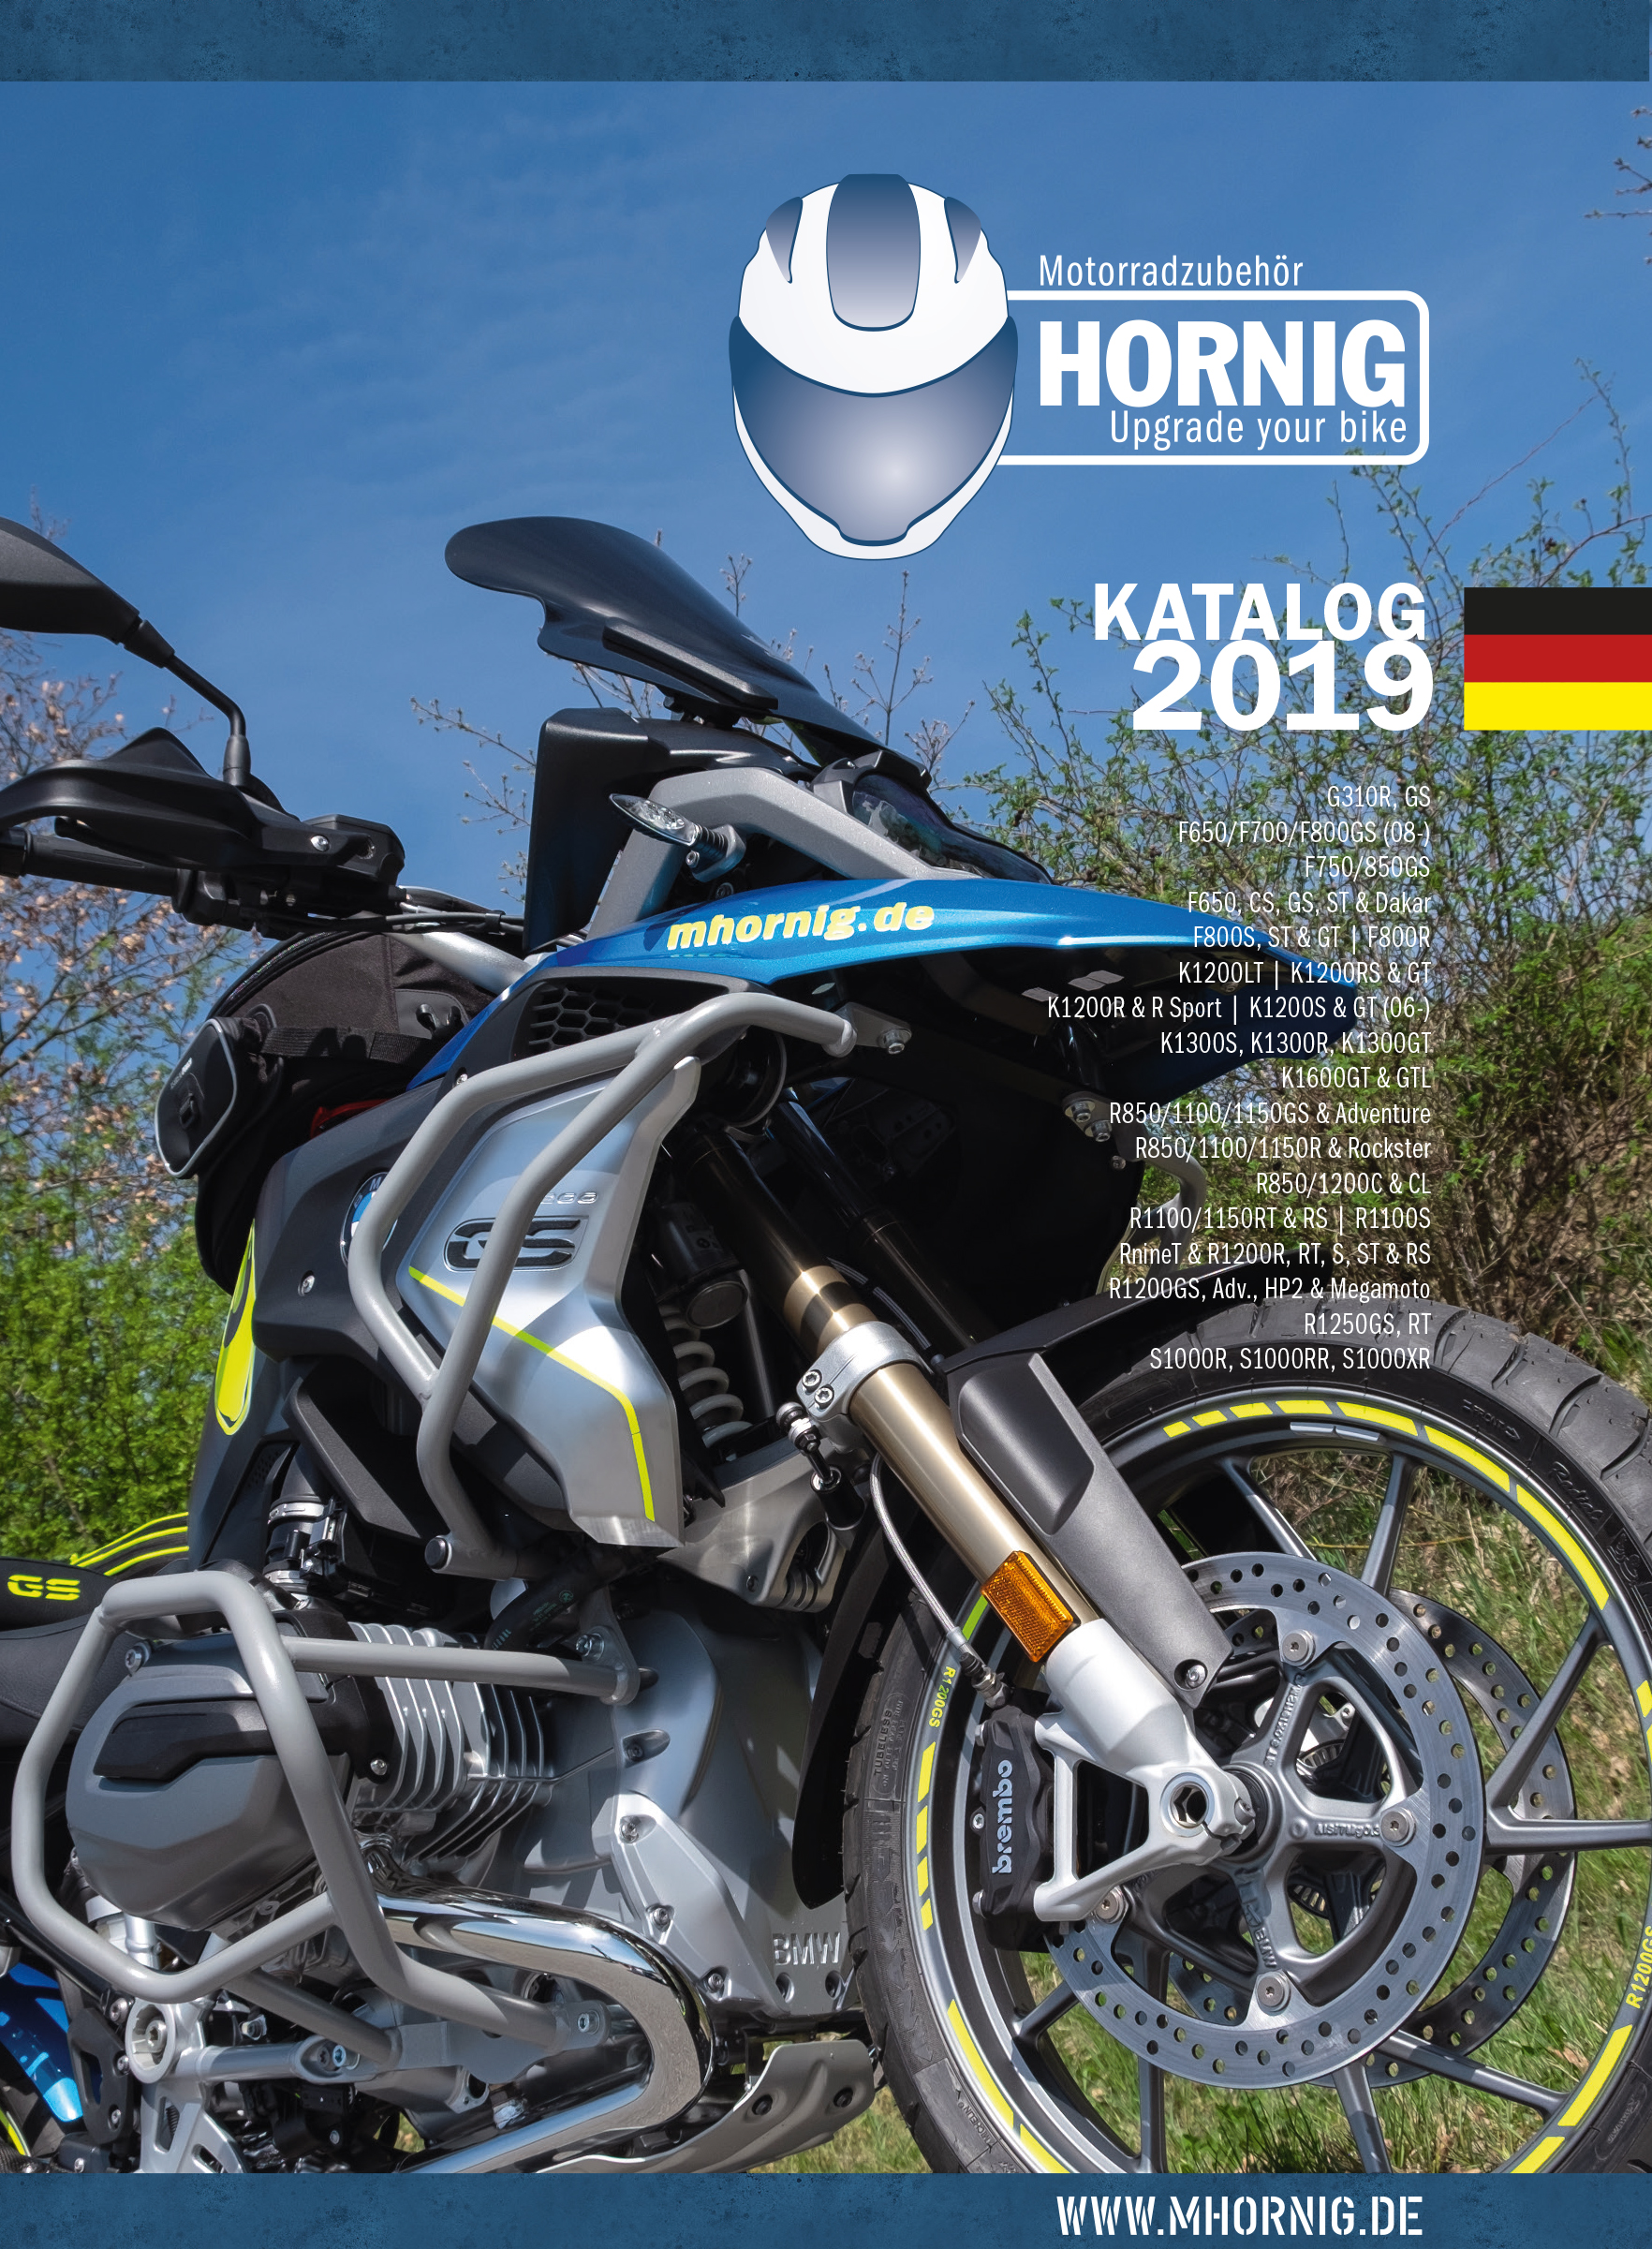 New Bmw Motorcycle Accessory Catalogue 2019 By Hornig Download Or Pre Order Now For Free Motorcycle Accessory Hornig Parts For Your Bmw Motorrad